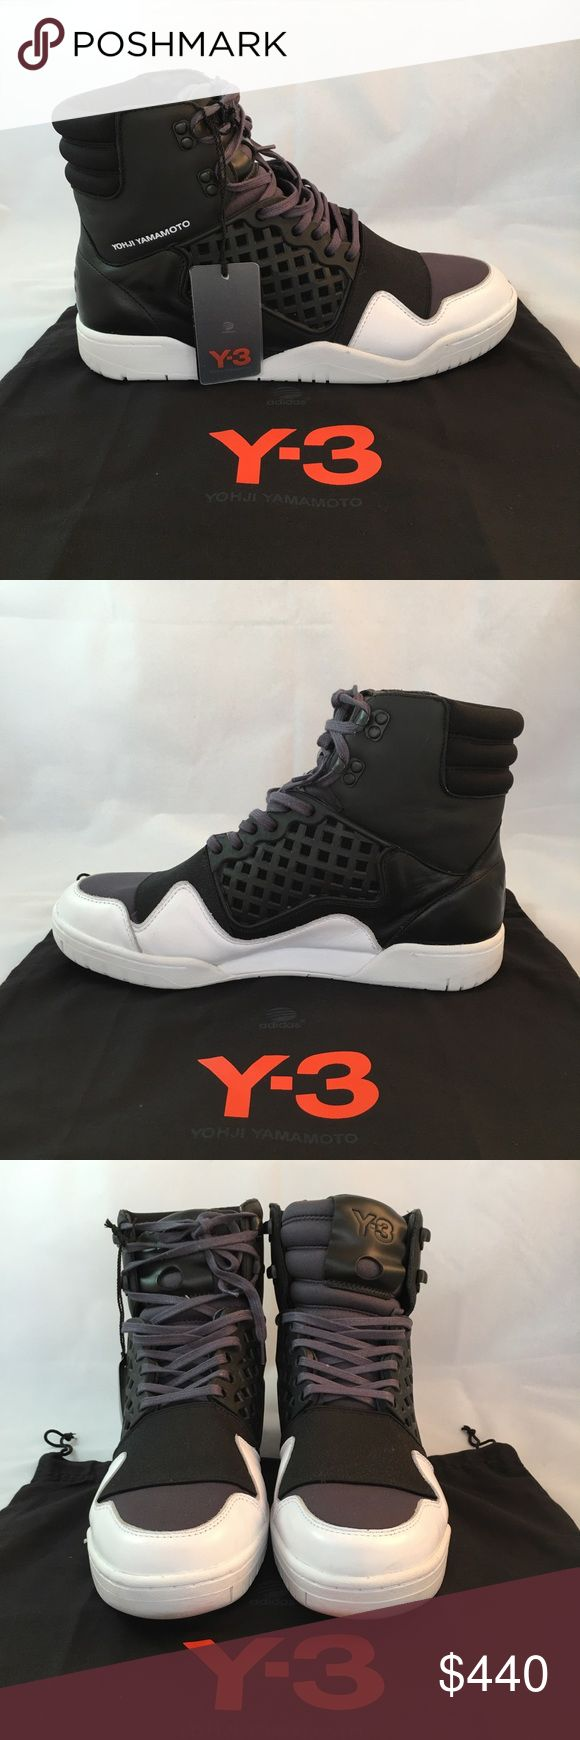 [42] Y-3 Courtside II M22021 Athletic Shoes Y-3 Courtside II M22021 Athletic Shoes, Limited Edition. Black, blue/gray, and white colors. These were worn once. No trades 🚫 Make an offer! Y-3 Shoes Athletic Shoes